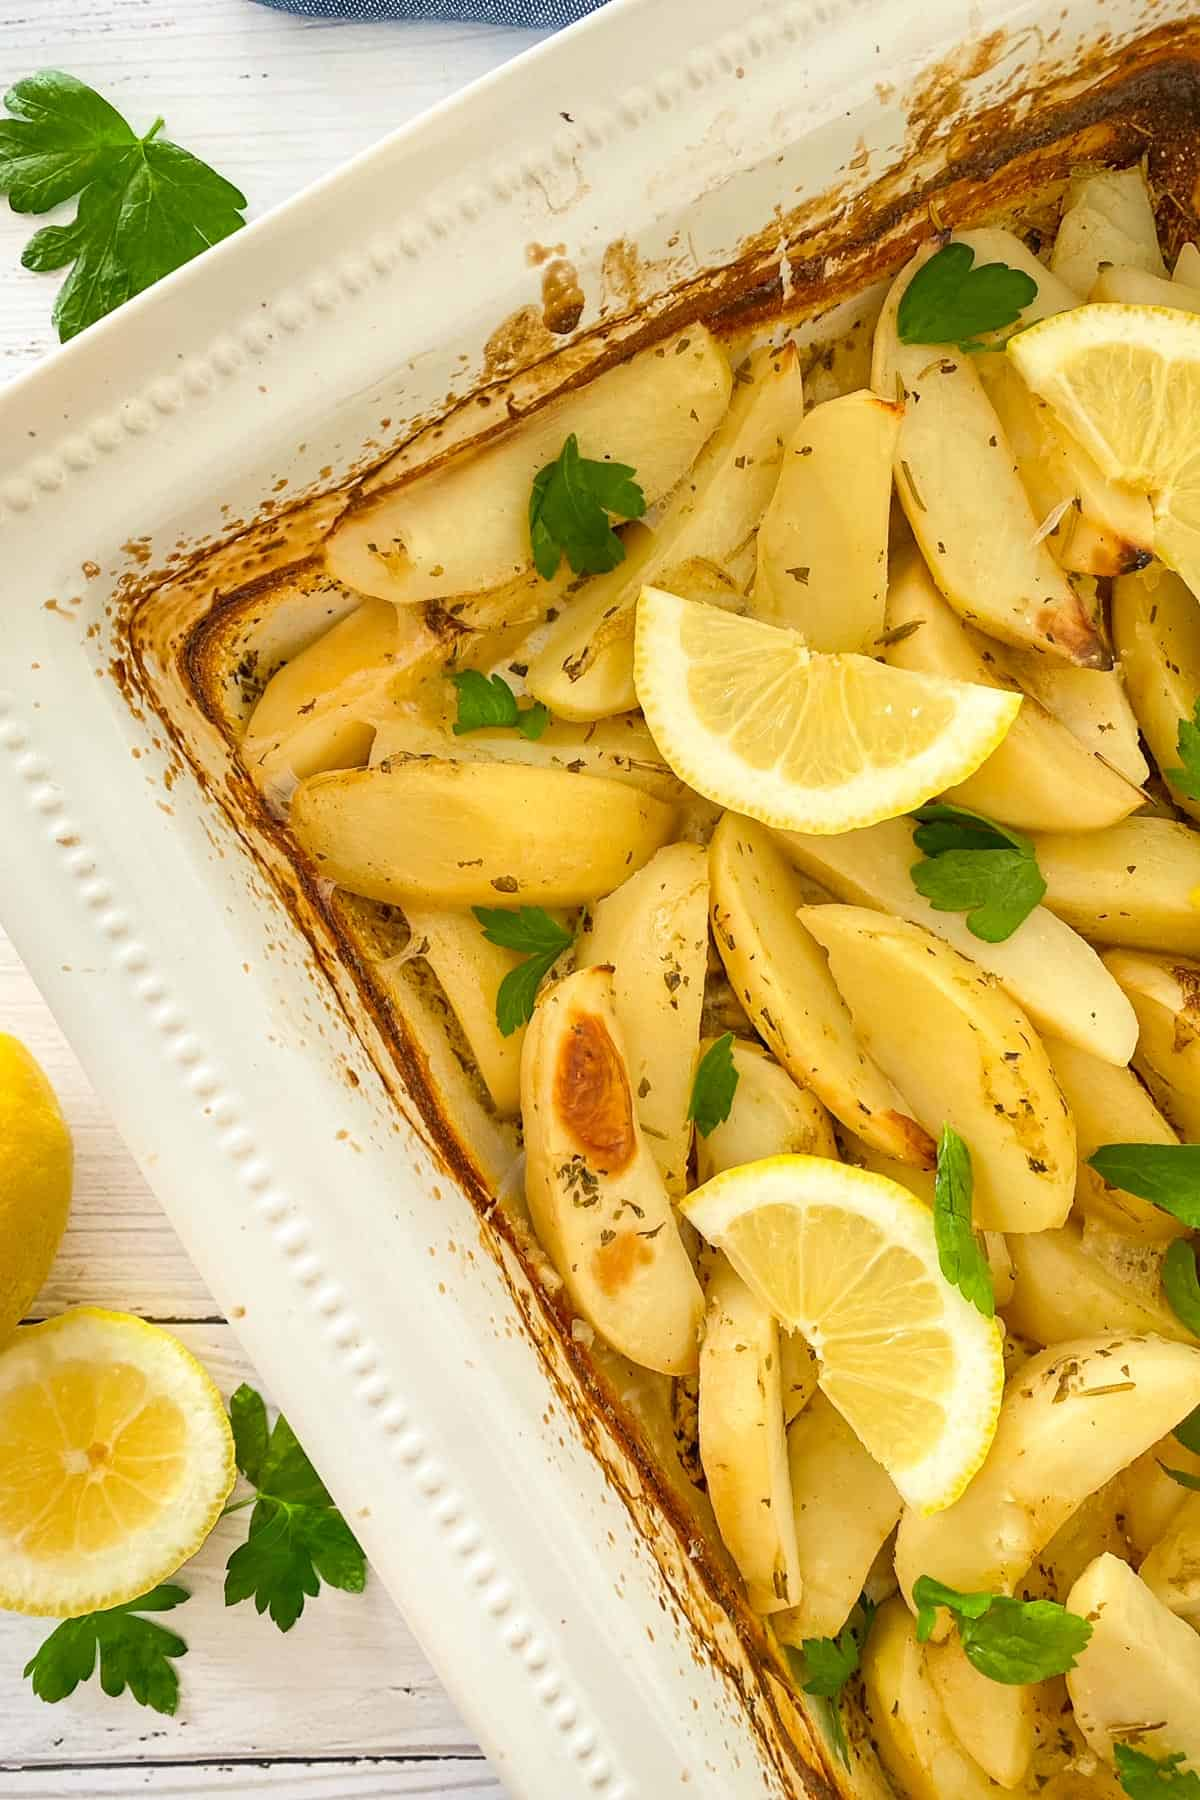 Roasted potatoes in white tray with lemon wedges and parsley garnish.